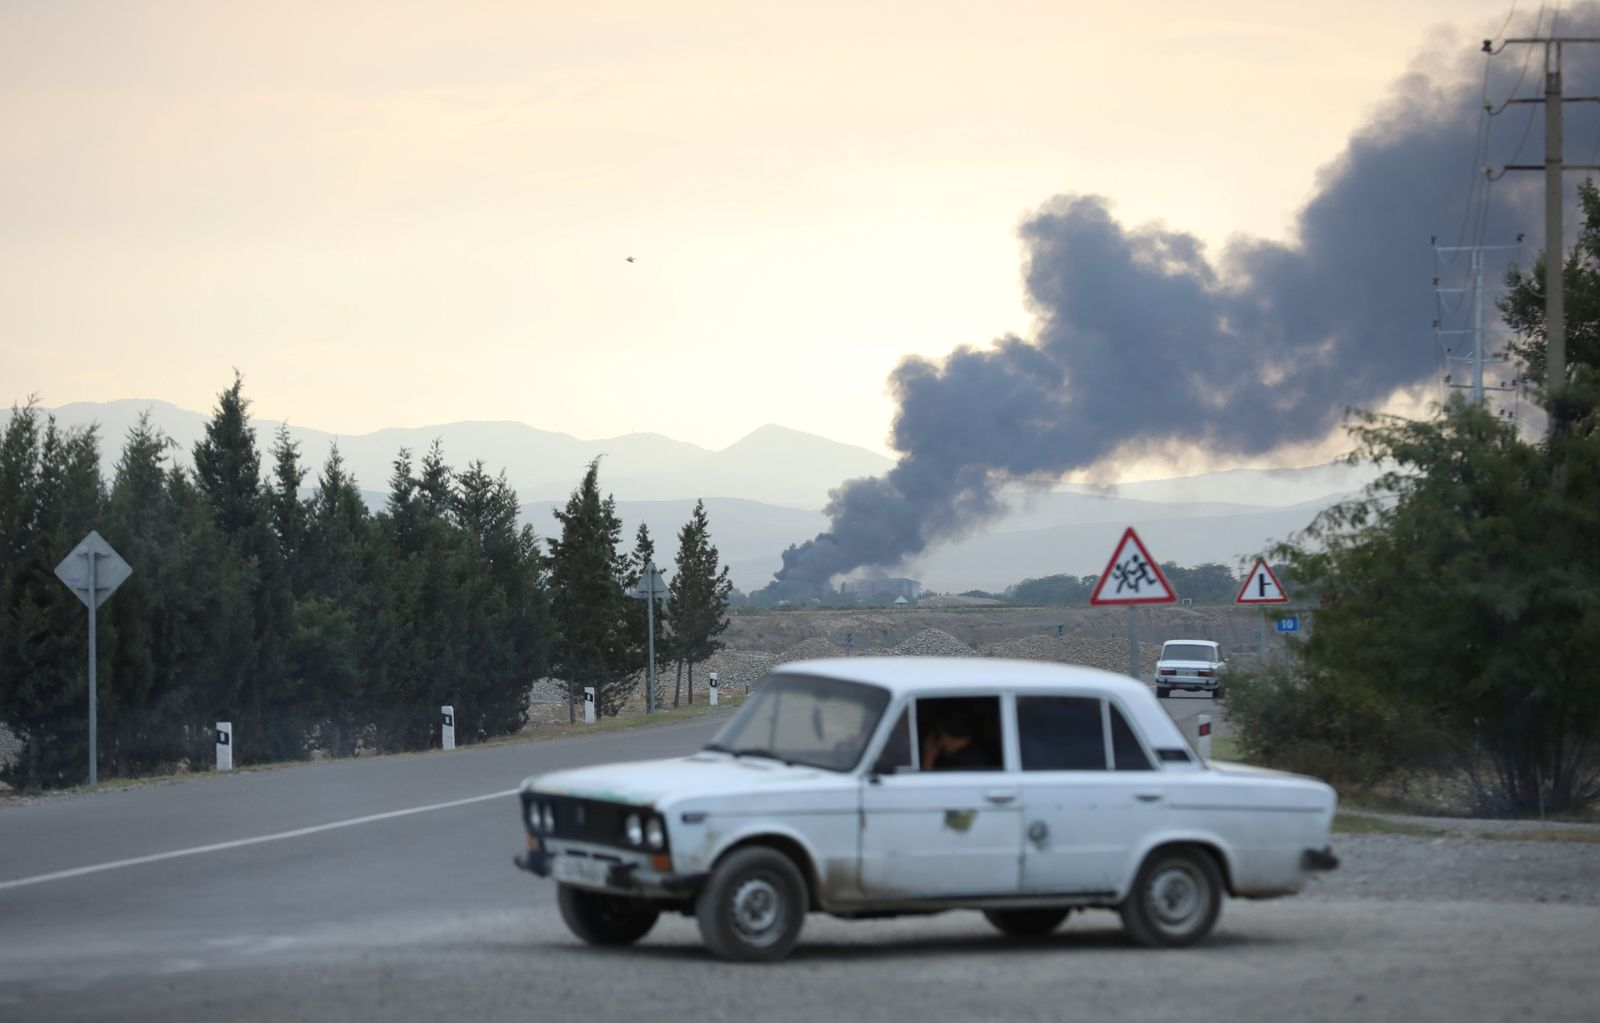 Smoke rises after alleged shelling during a military conflict over the breakaway region of Nagorno-Karabakh, in Terter